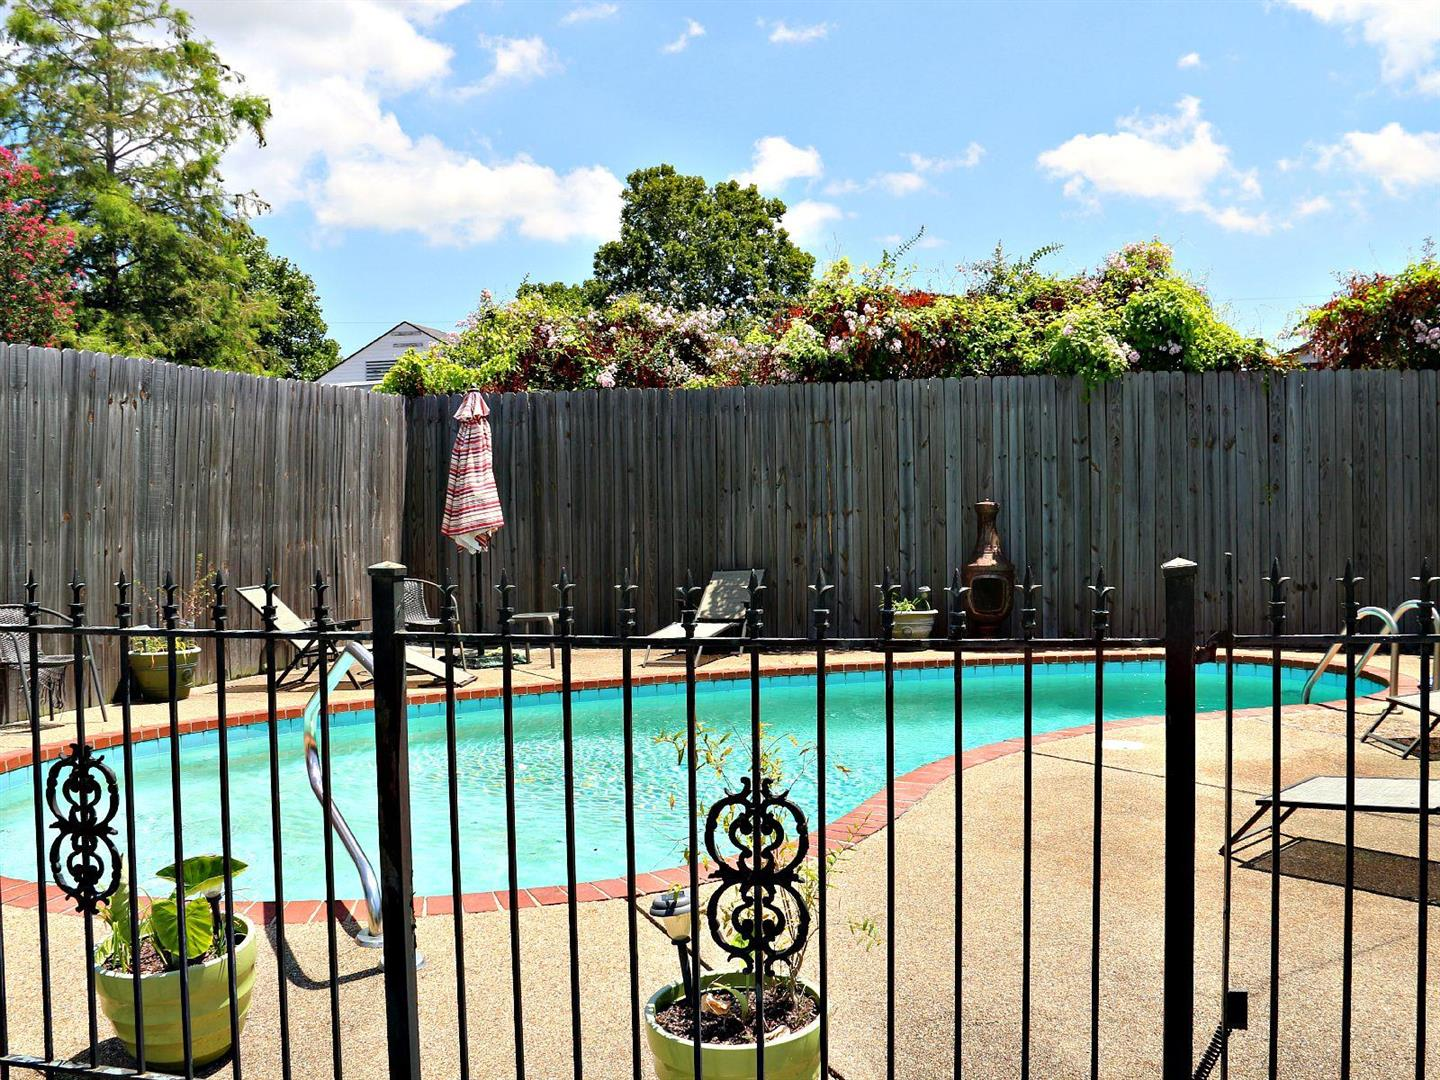 1129JacksonAve.Pool.jpg